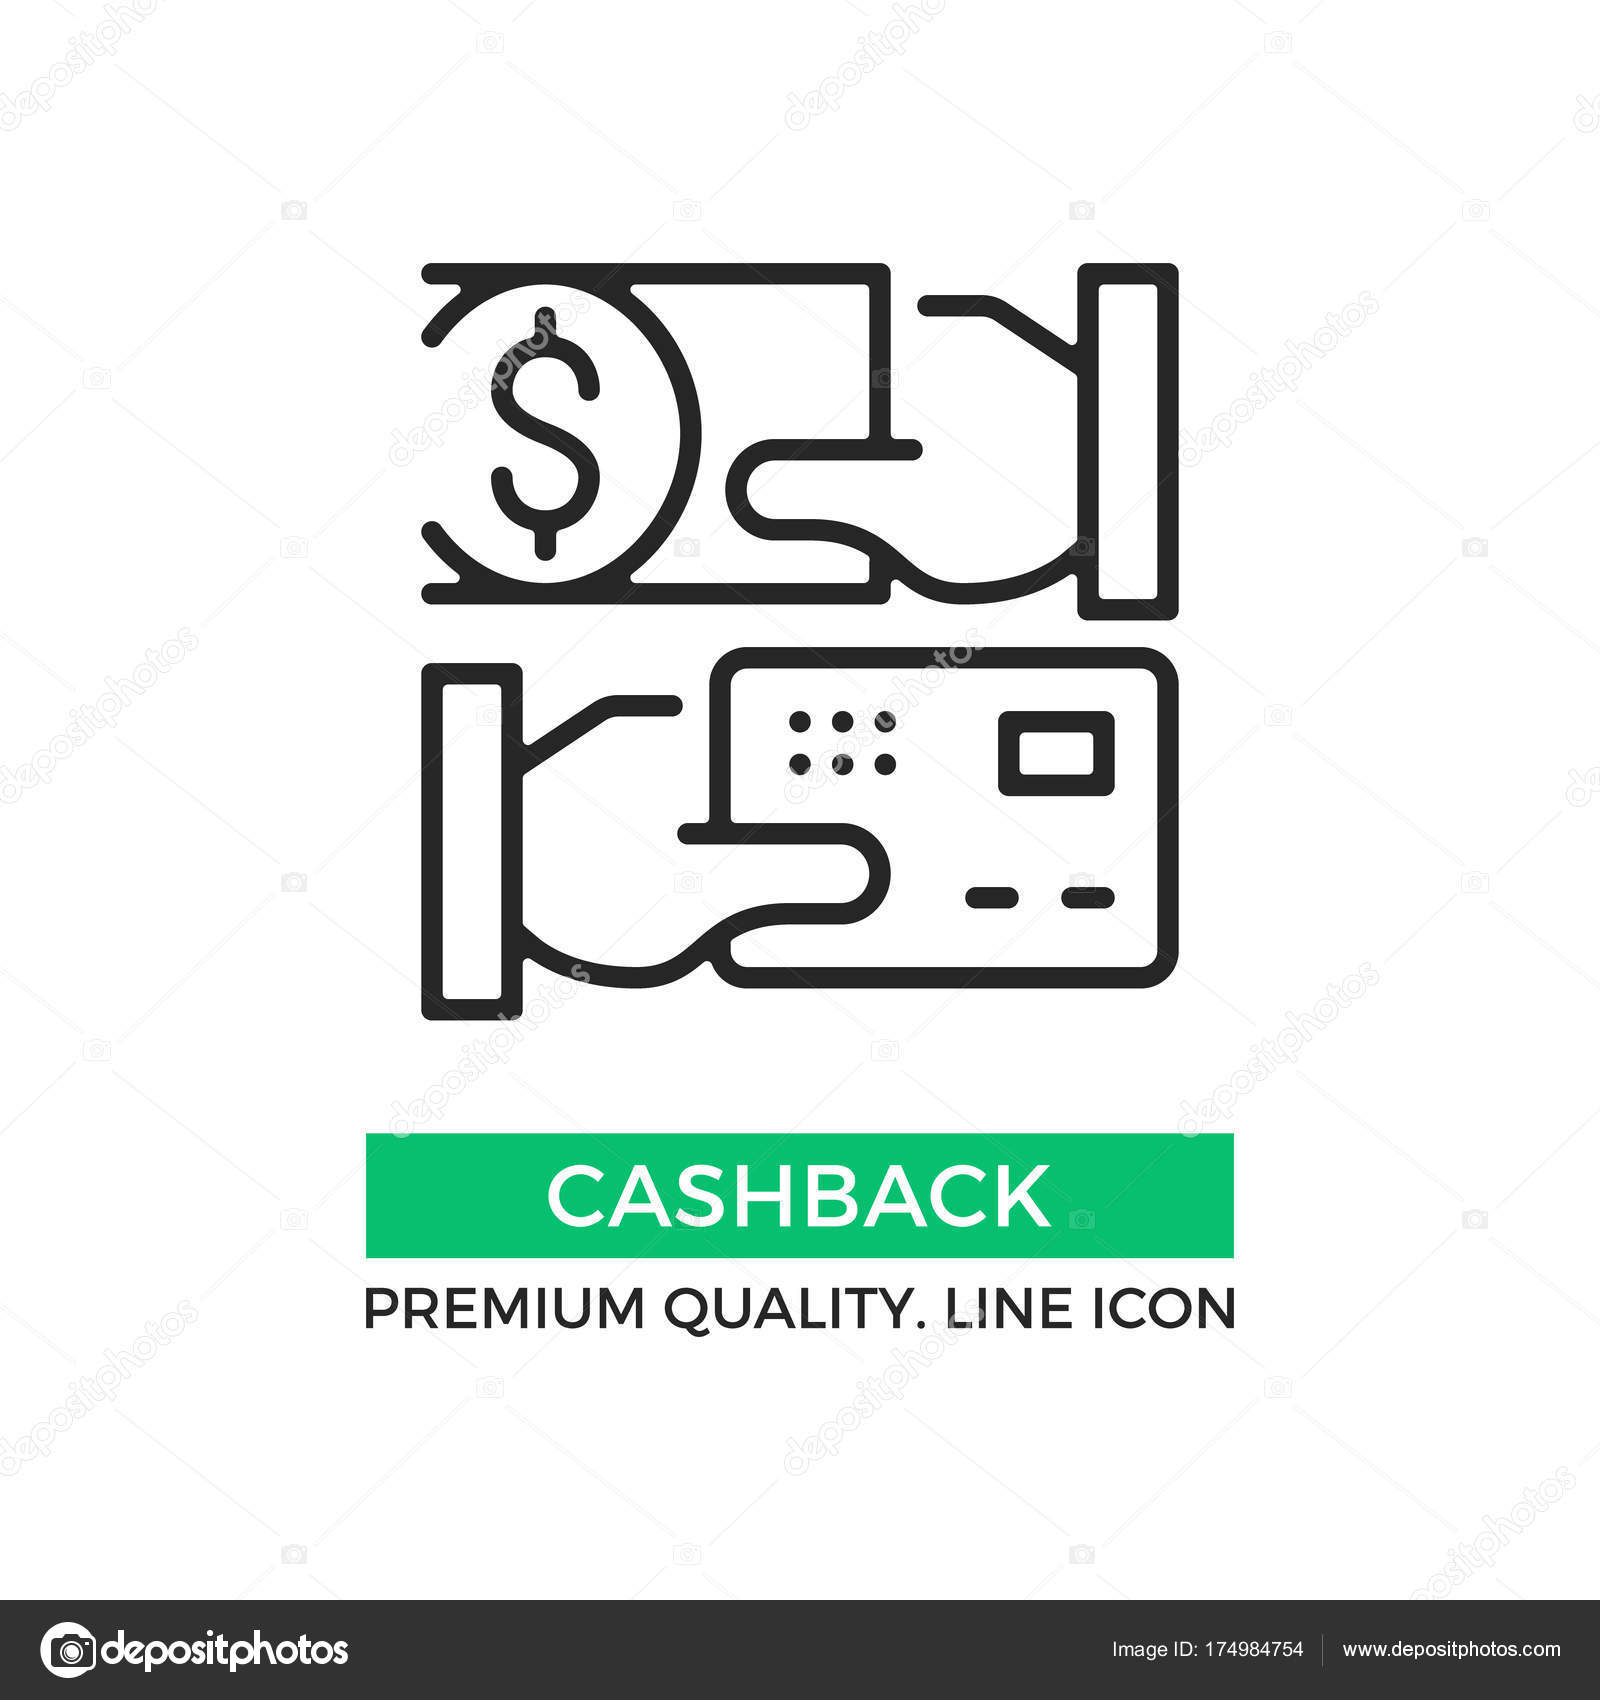 vector cashback icon cash back hand holding credit card hand